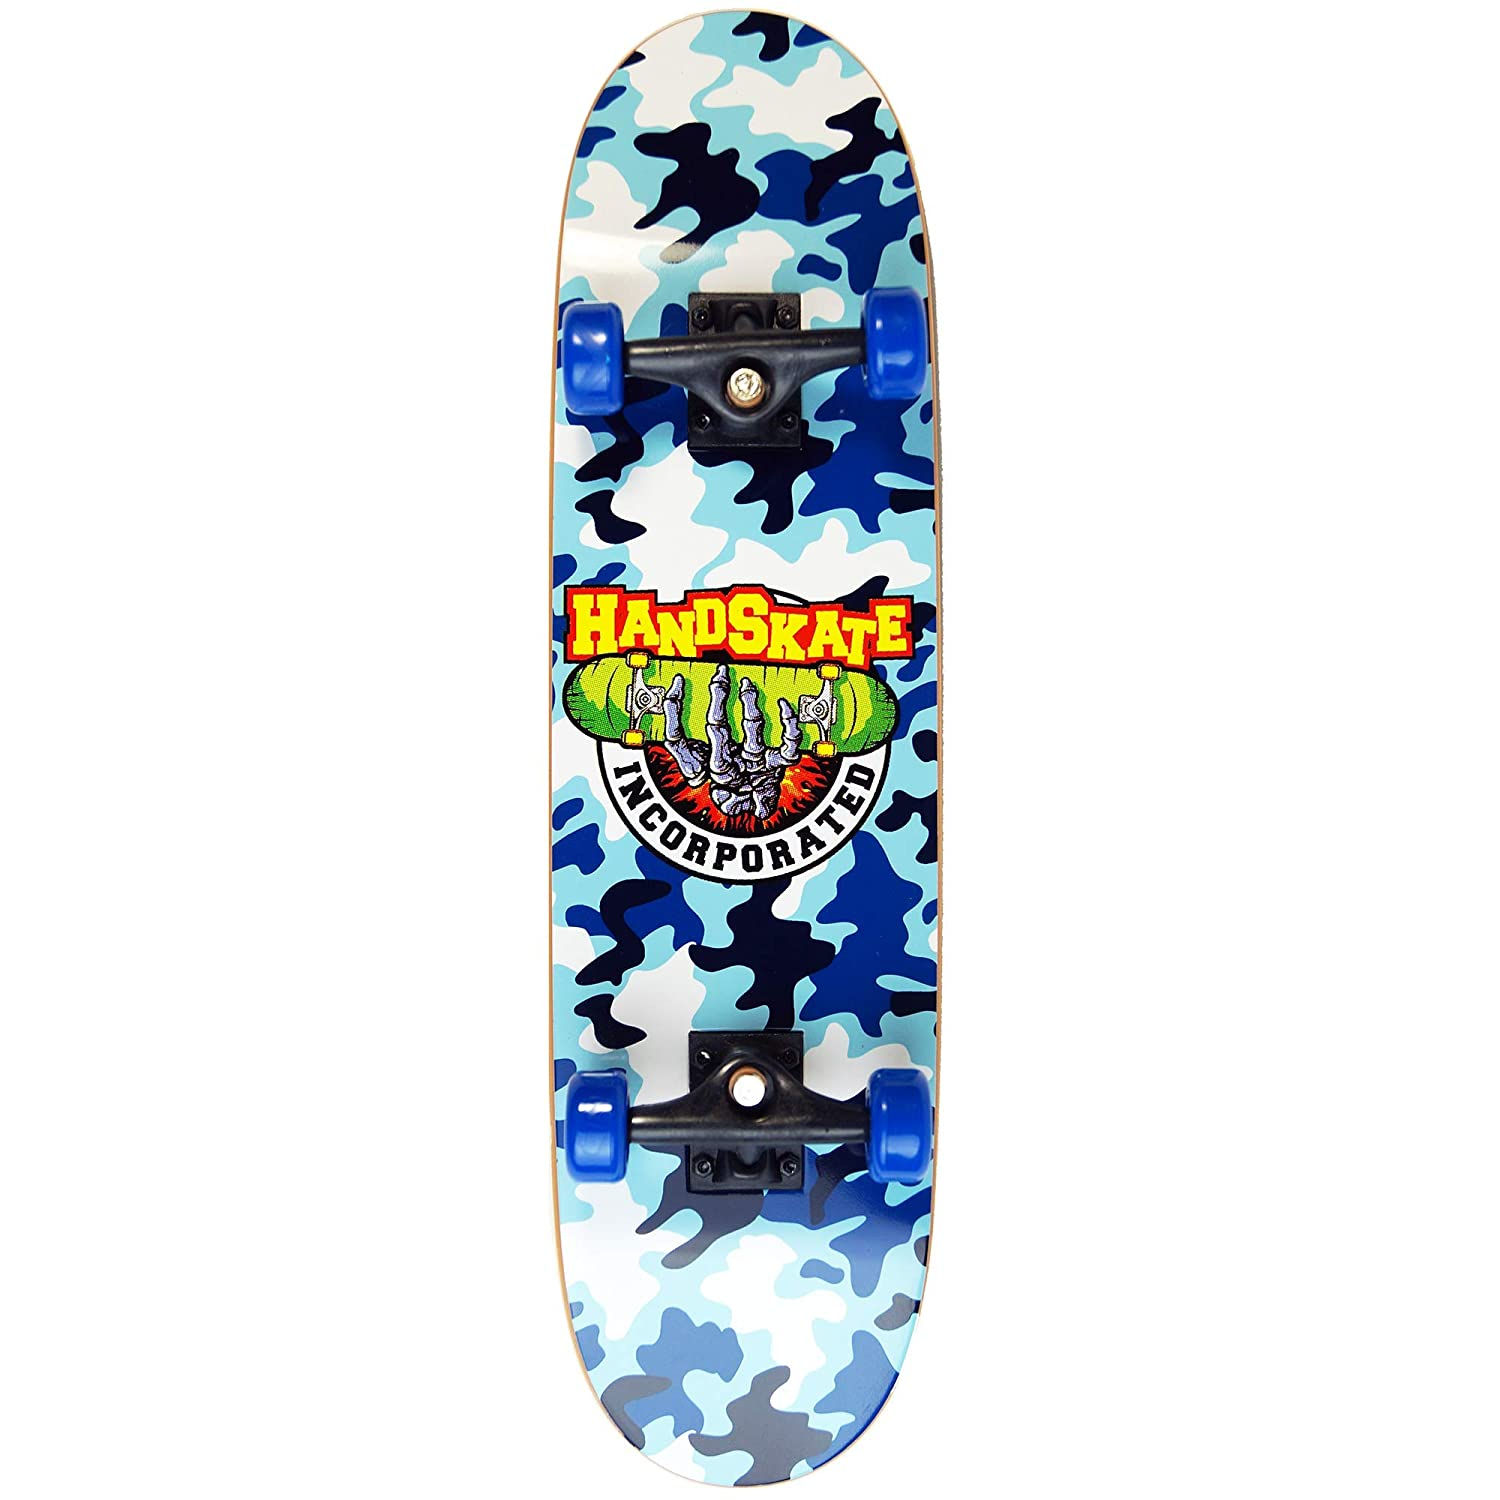 Hand board 10 inches hand skateboard tech large finger 27cm